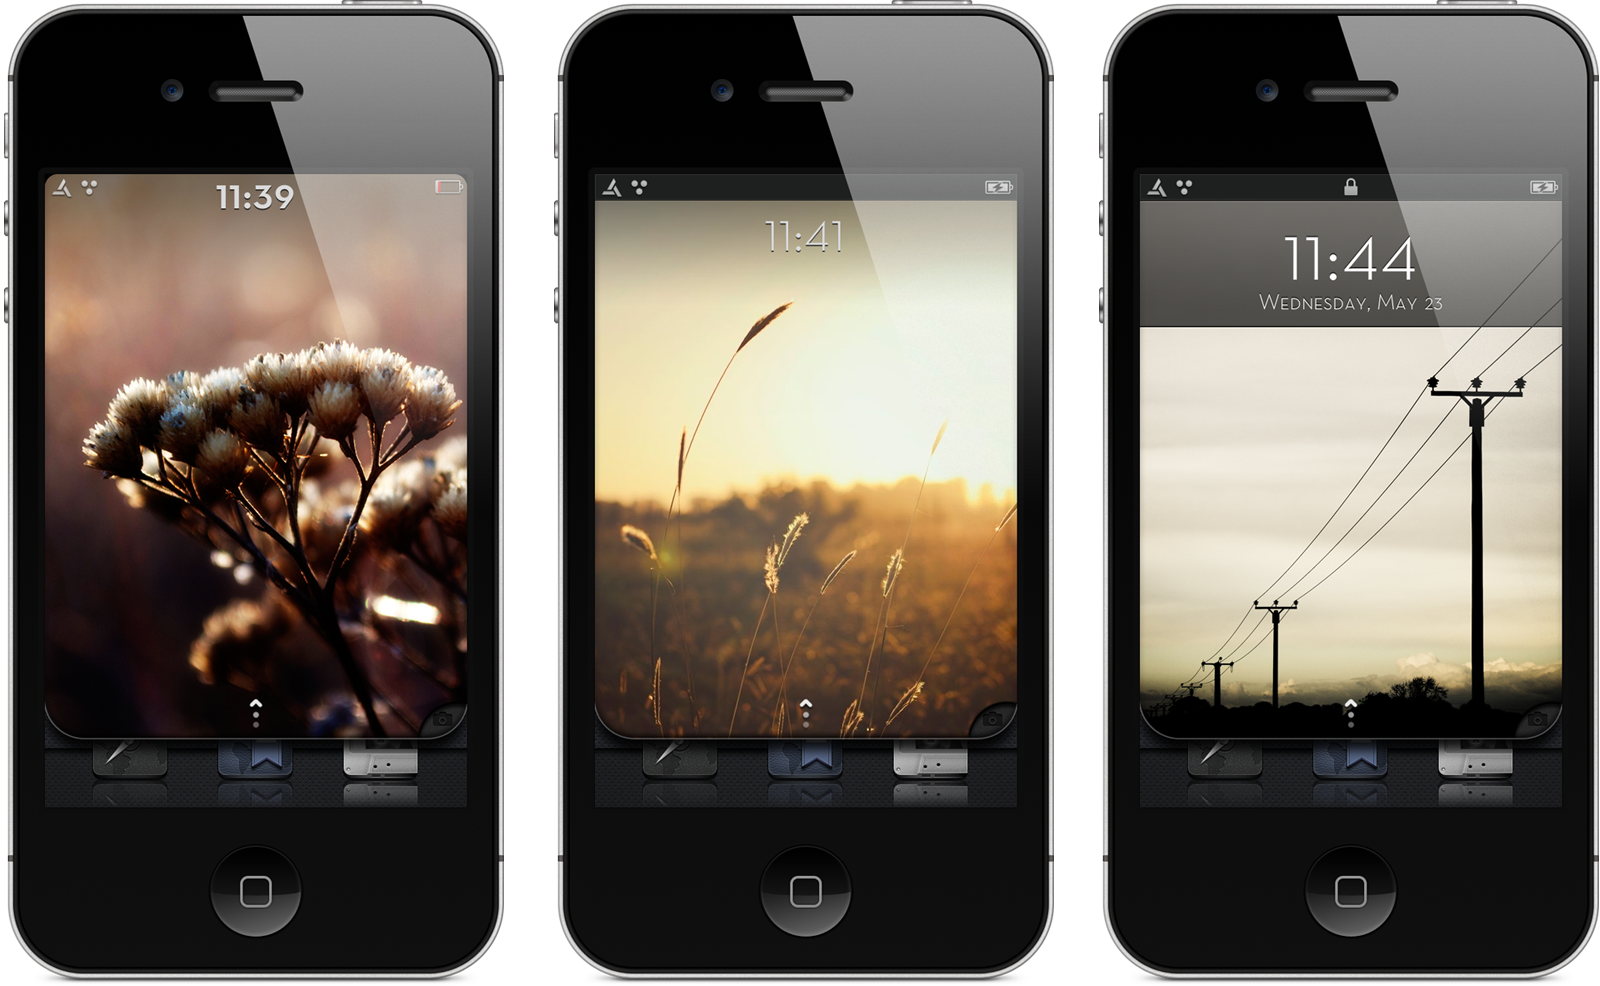 Minimal Android Lockscreen by bblake